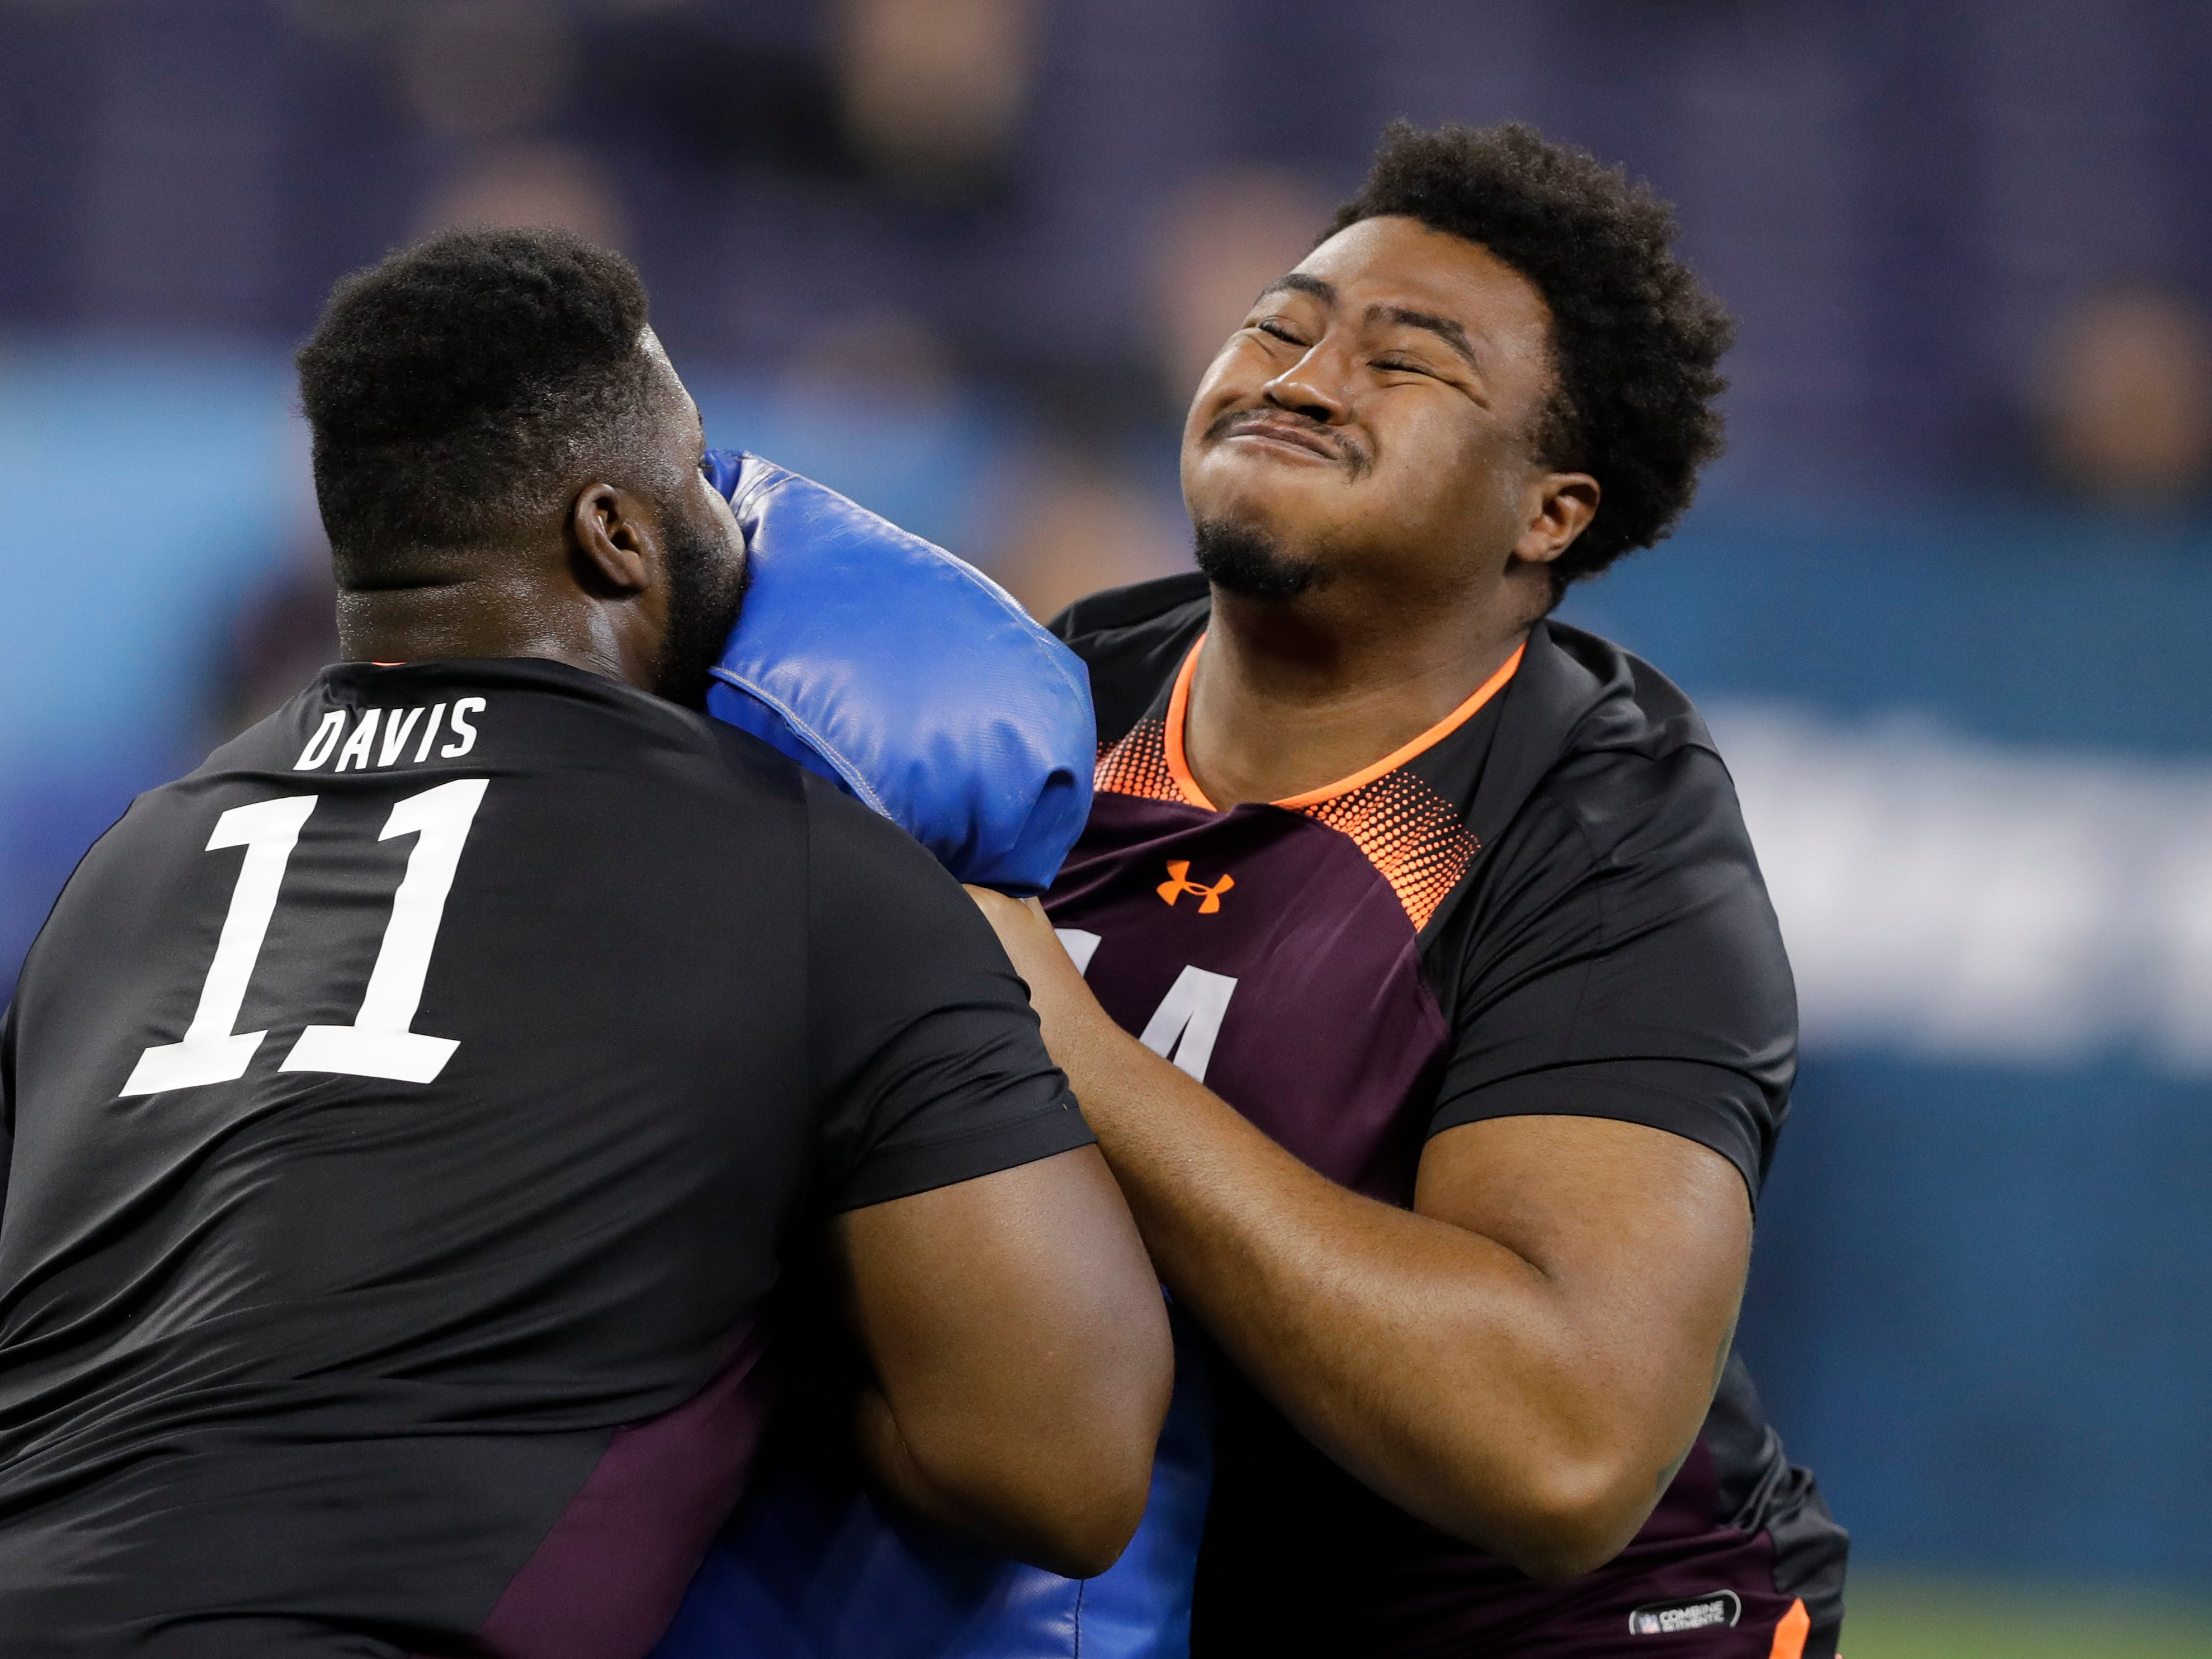 Charlotte offensive lineman Nate Davis, left, and USC offensive lineman Chuma Edoga run a drill during the NFL football scouting combine, Friday, March 1, 2019, in Indianapolis.